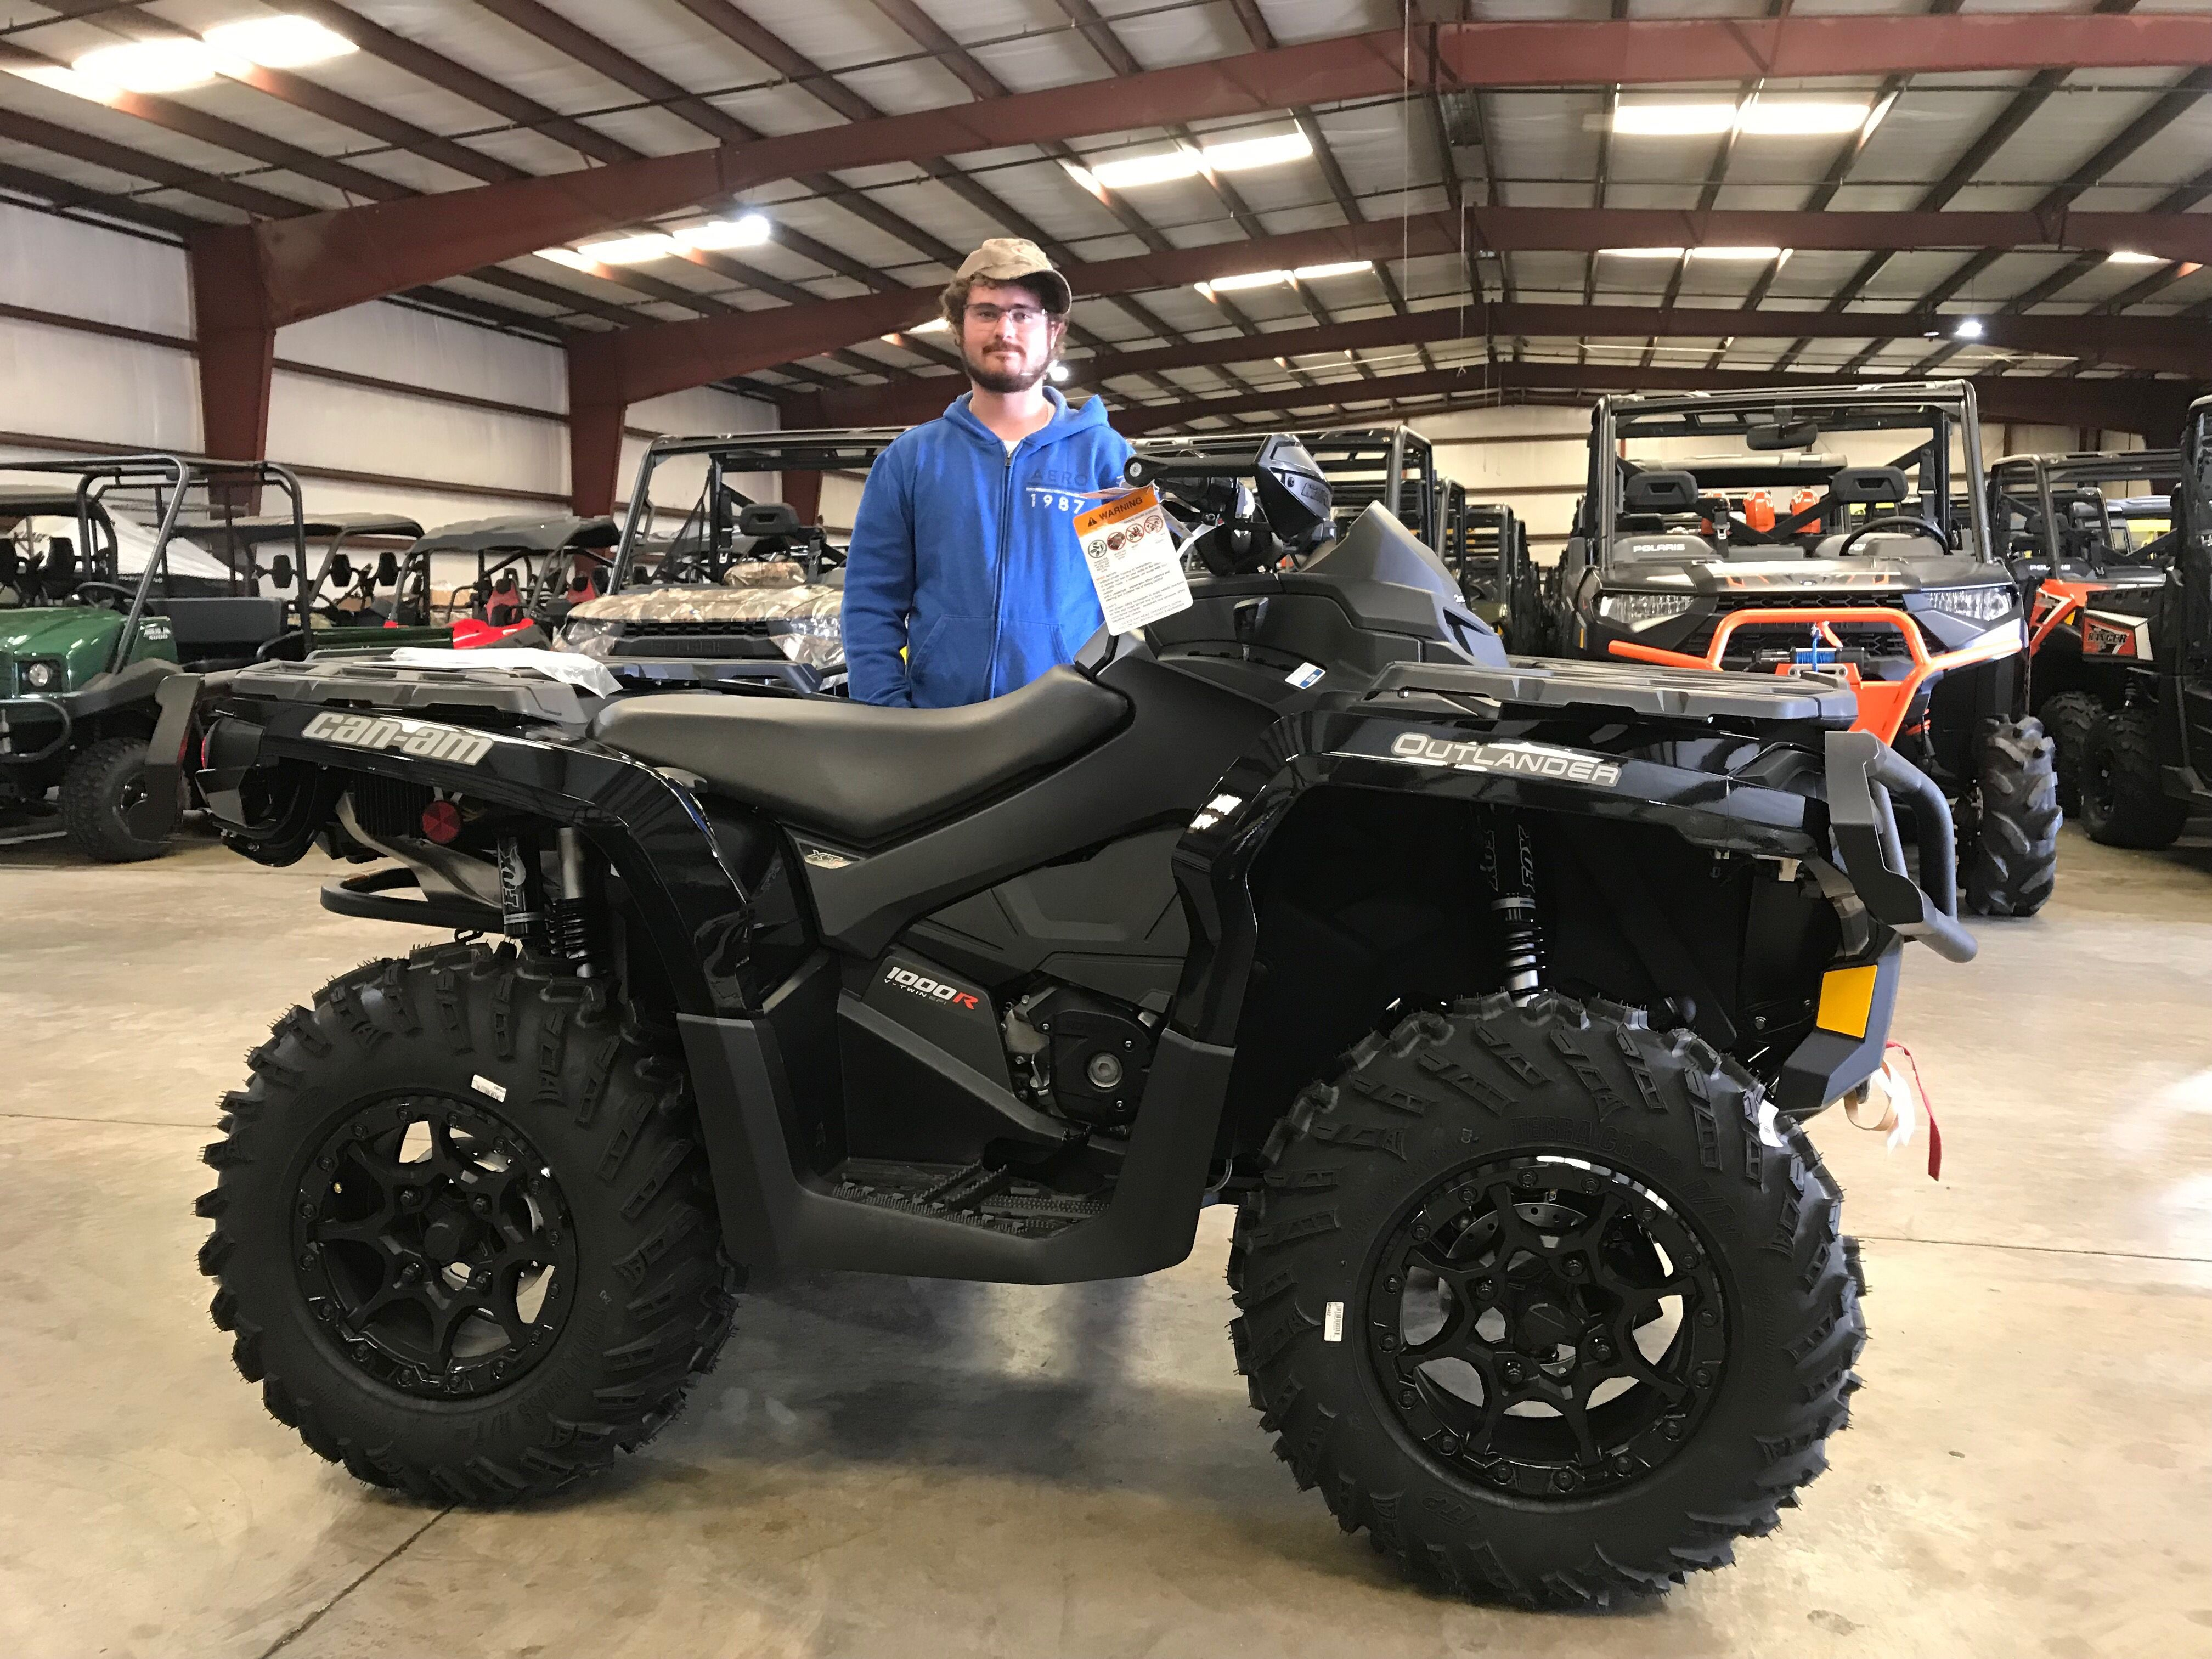 Congratulations to Jacob Eubanks from New Augusta, MS for